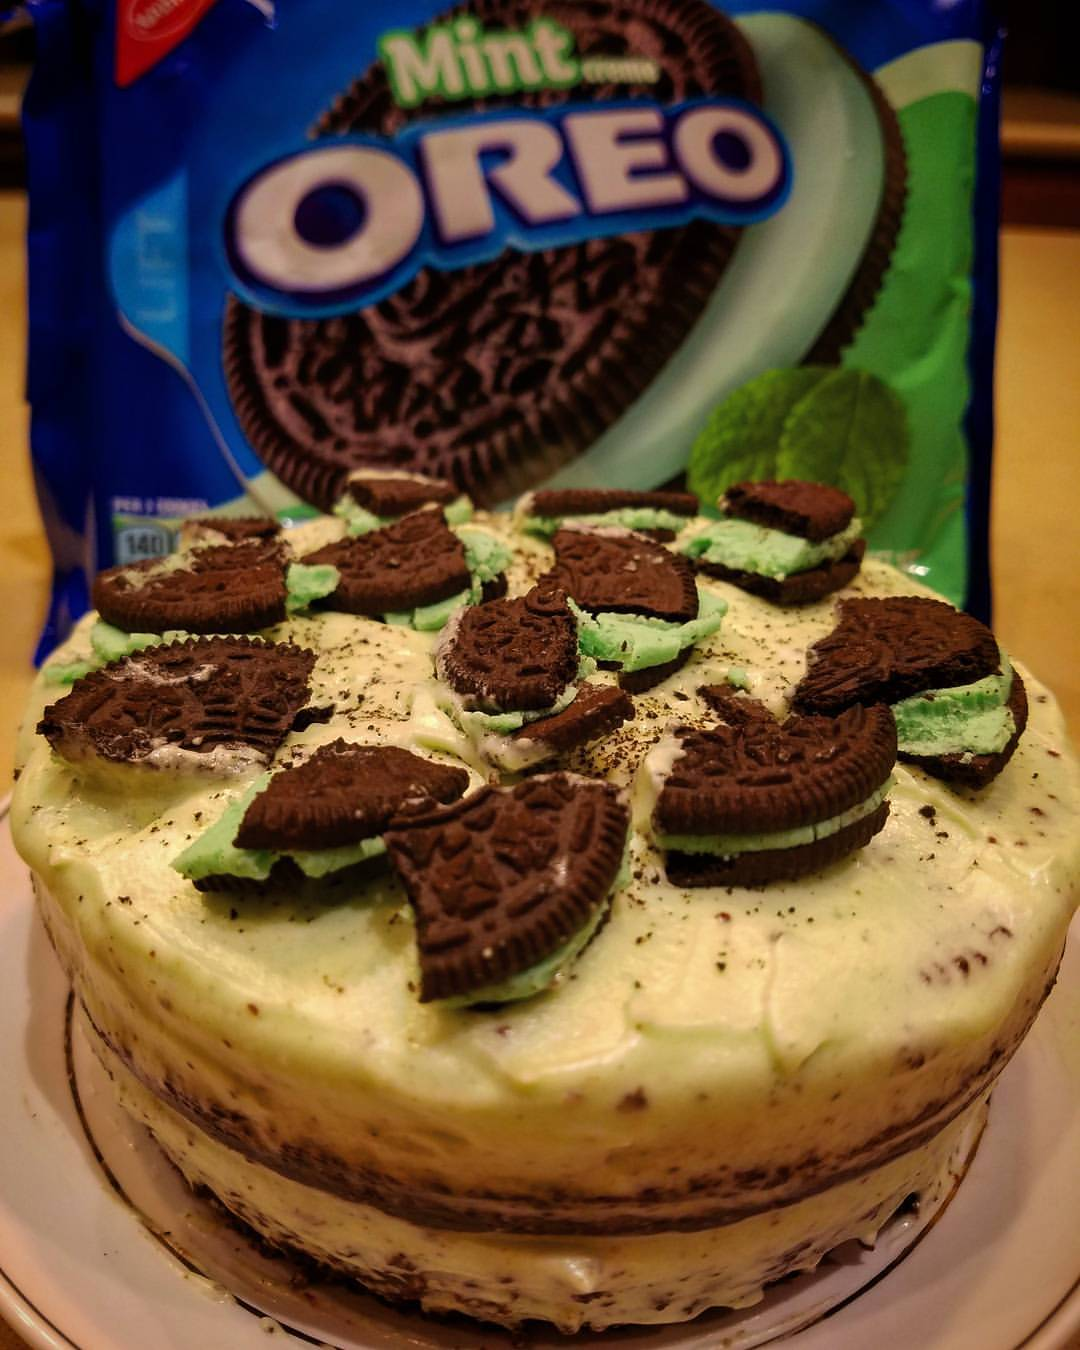 Mini Oreo cheese cake1